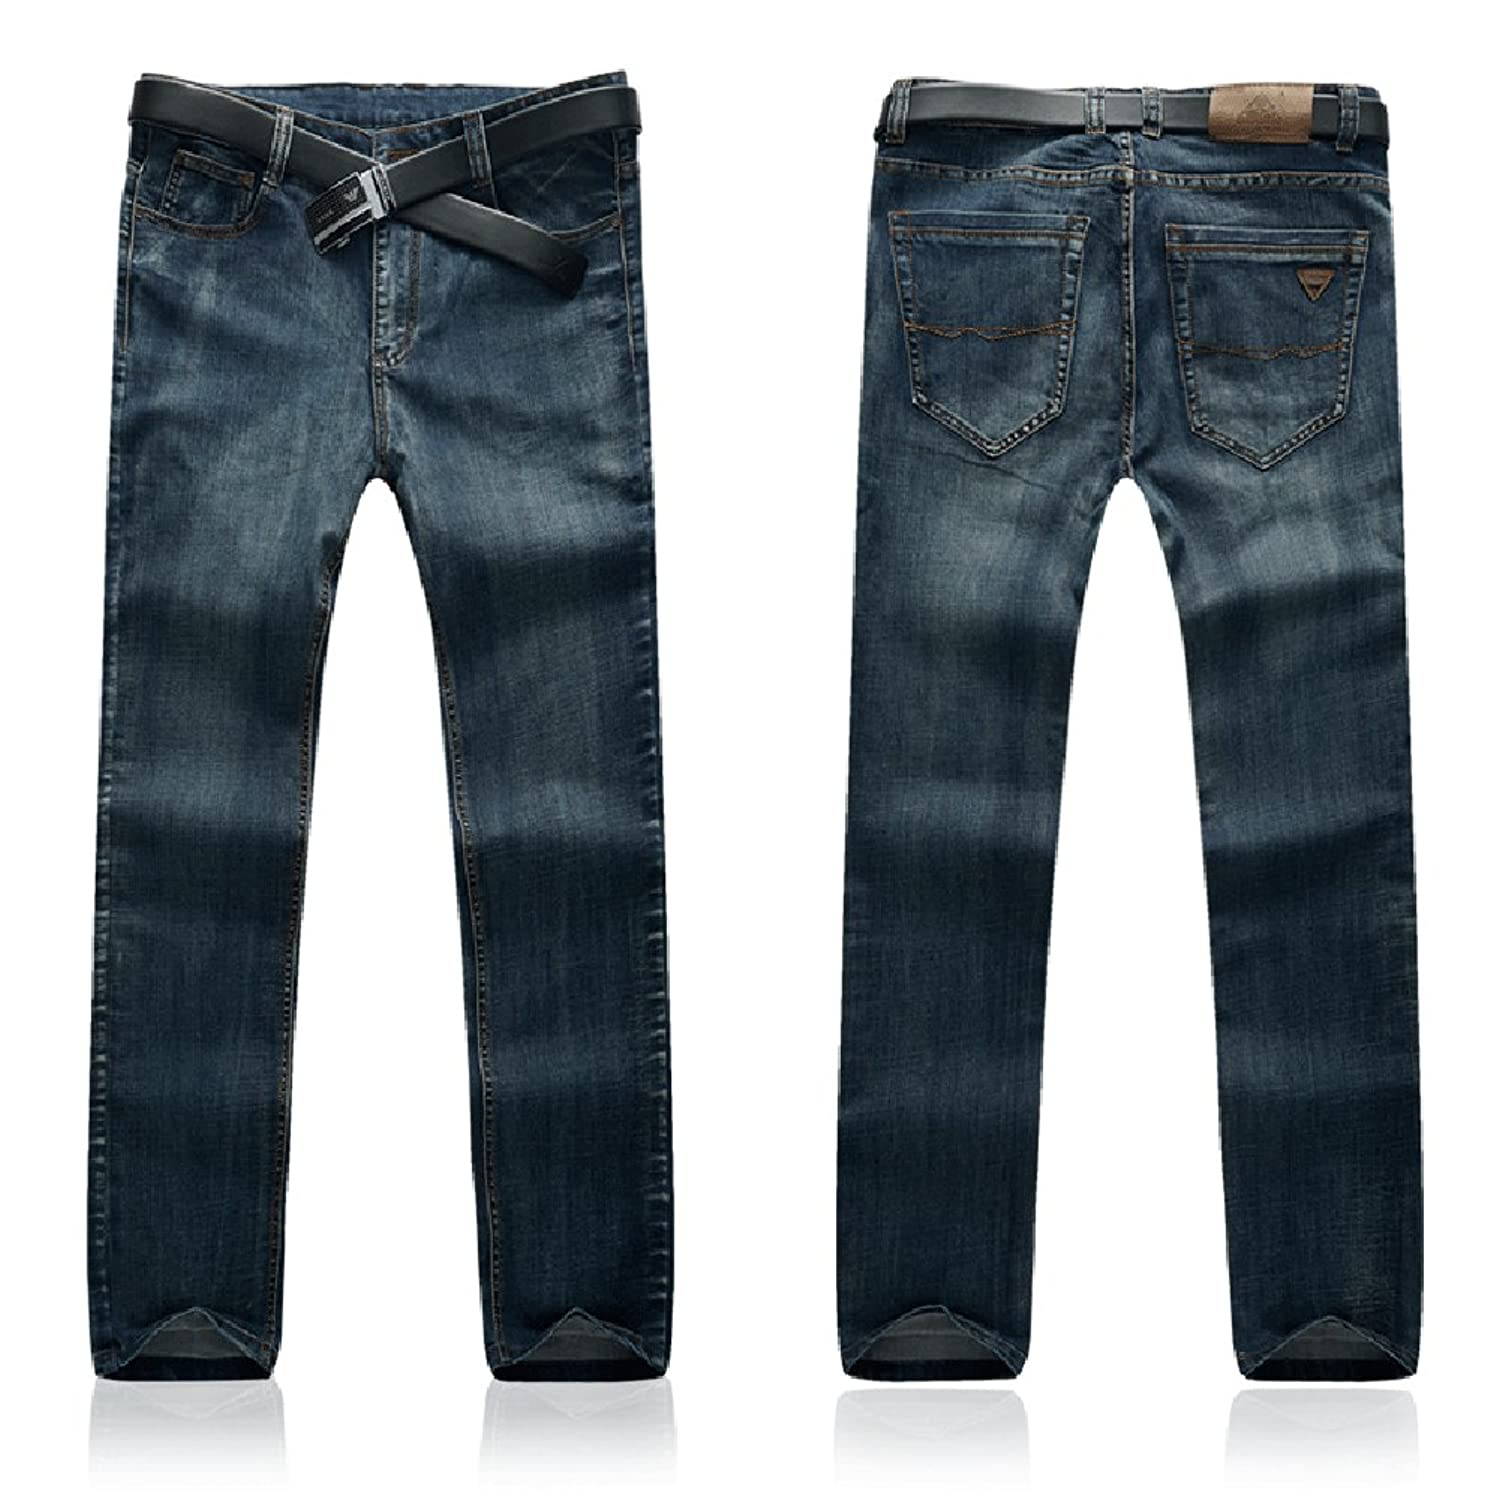 SITENG Men`s Jeans Plus Size 34 36 38 40 42 44 46 48 50 Denim Pants Jeans